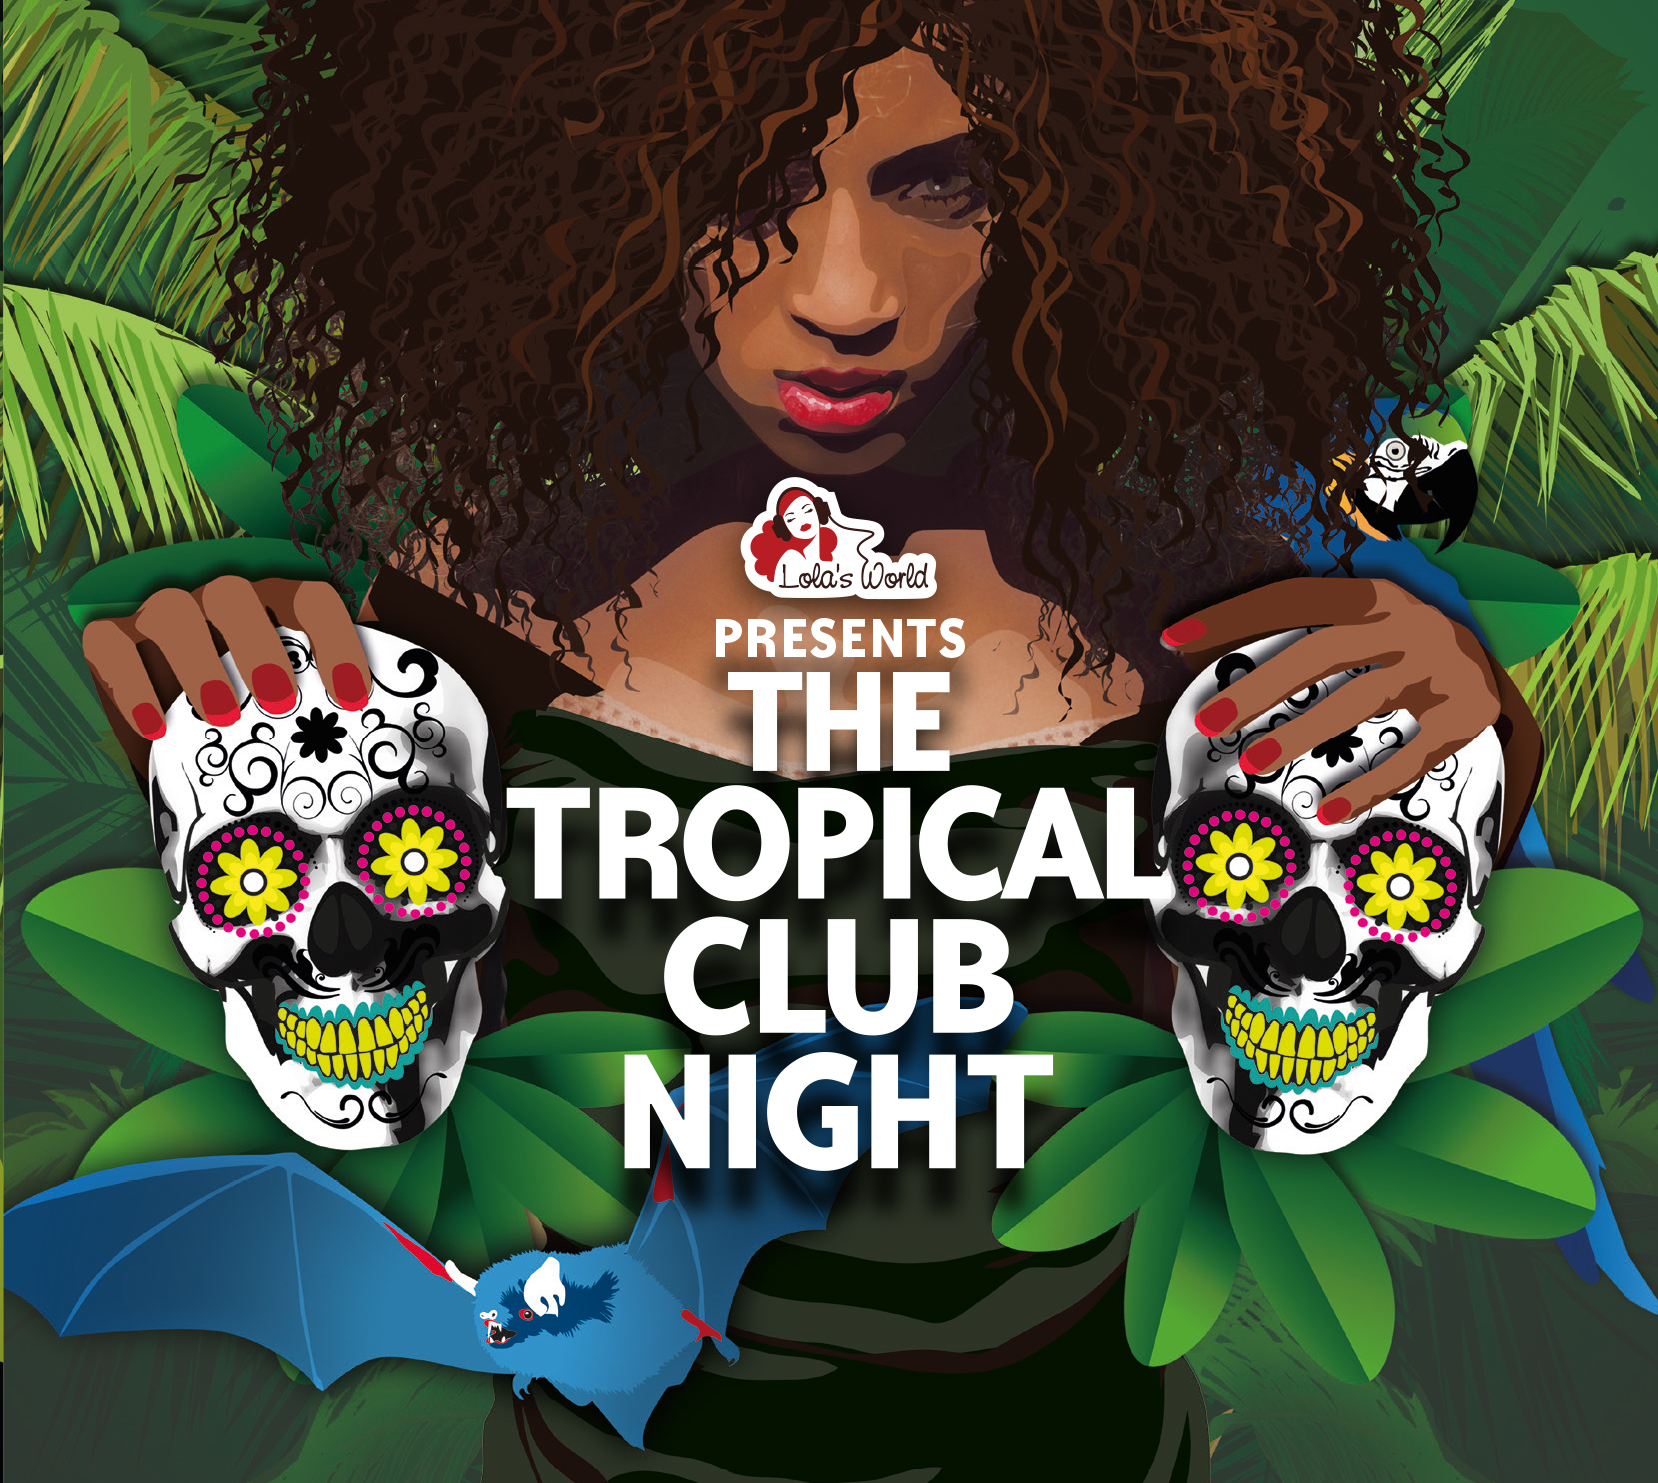 THE_TROPICAL_CLUB_NIGHT_Cover_300dpi